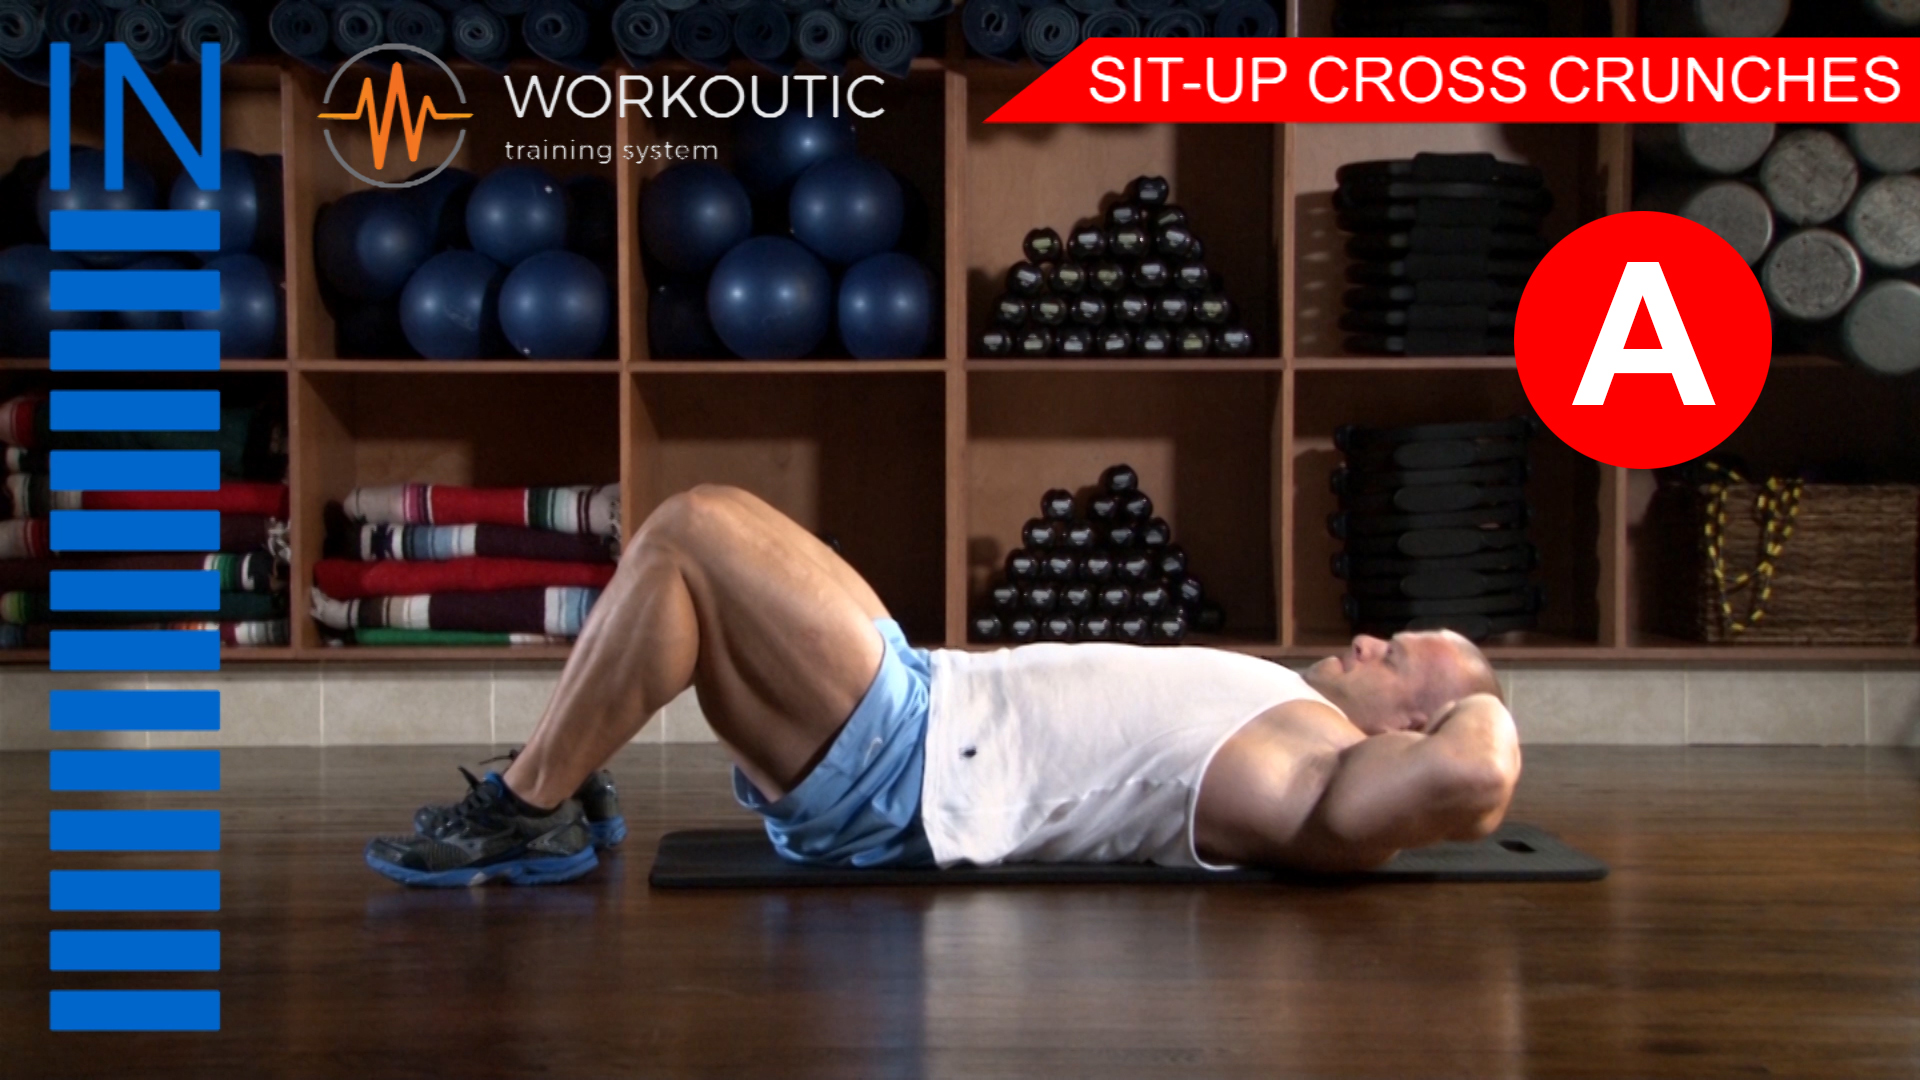 Abs Exercises - Workutic - 6 pack special - Sit-Up Cross Crunches Inhale